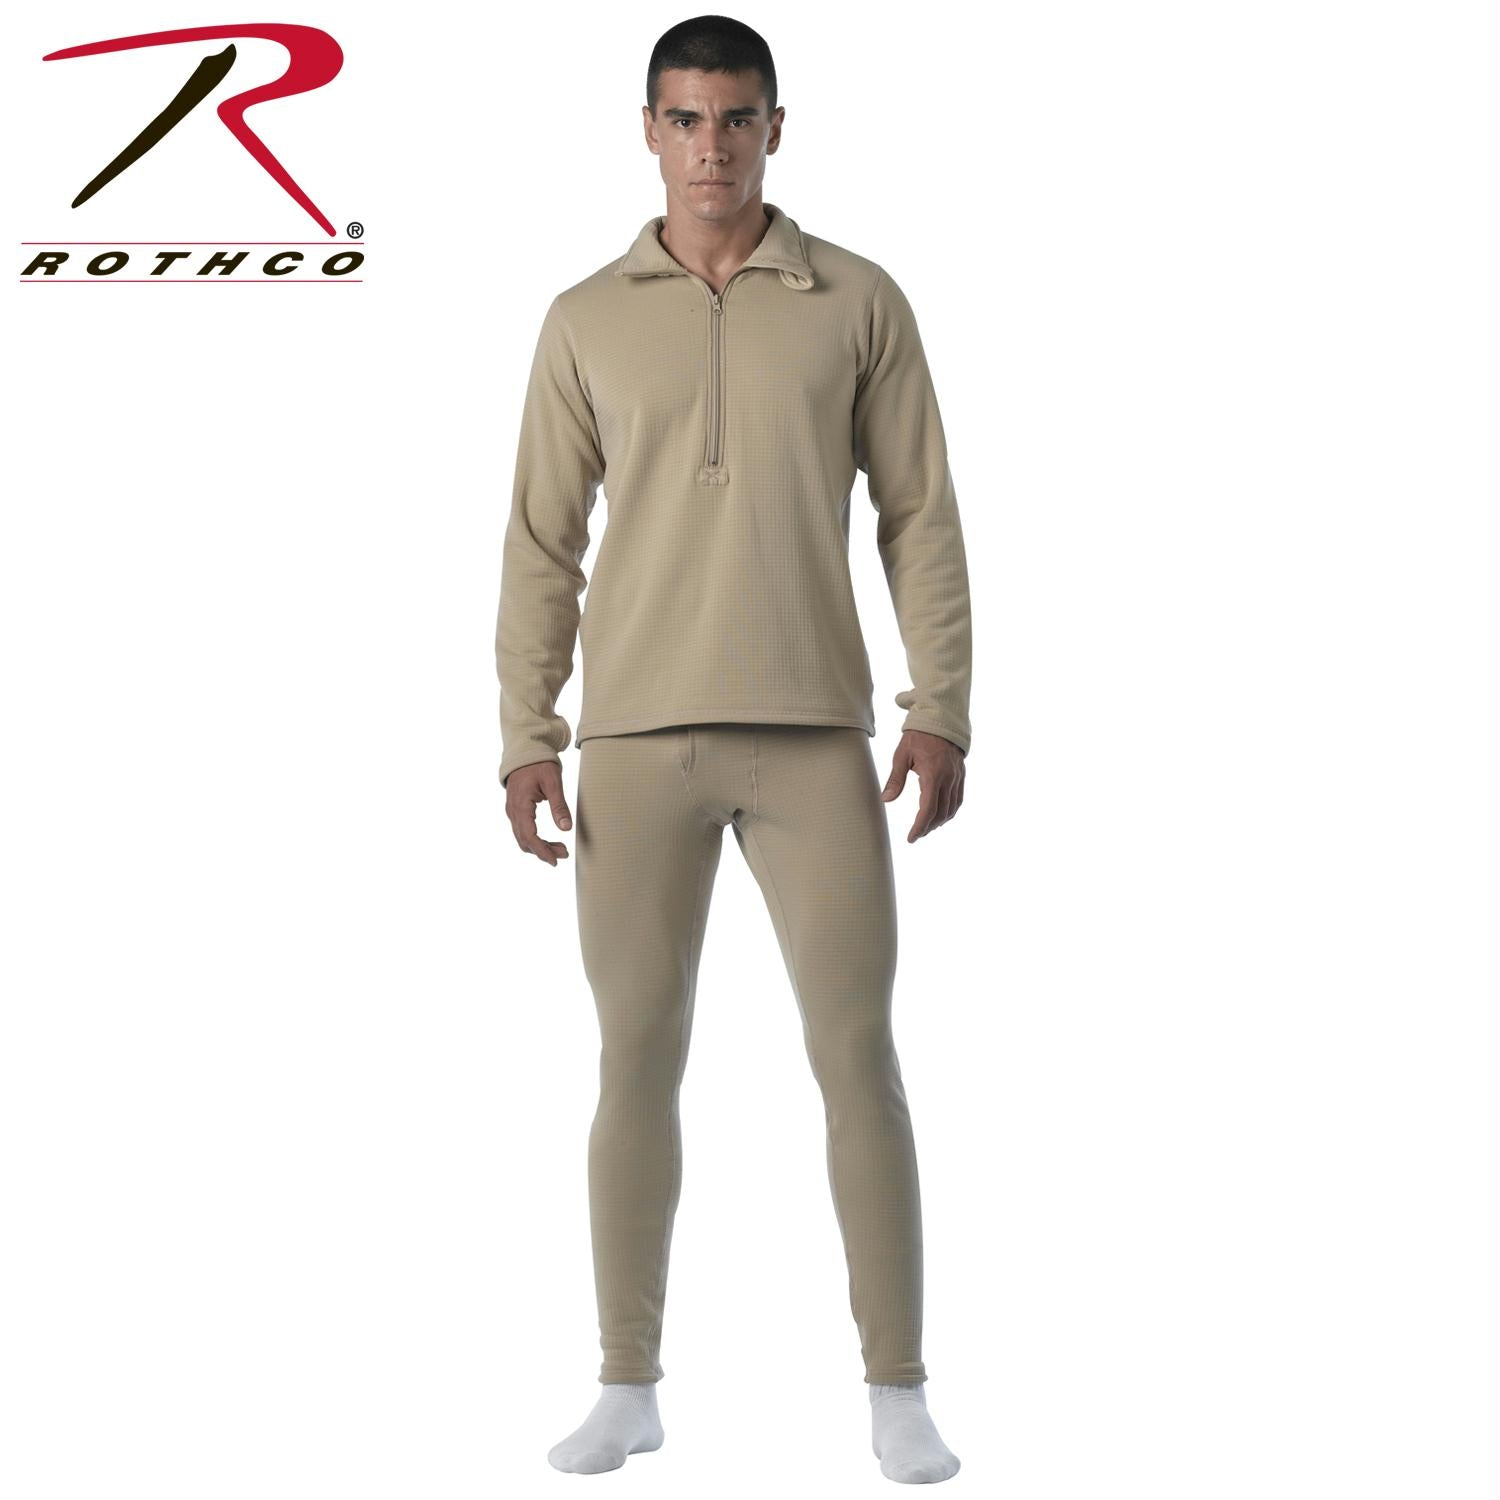 Rothco Military E.C.W.C.S. Generation III Mid-Weight Bottoms - Desert Sand / XL